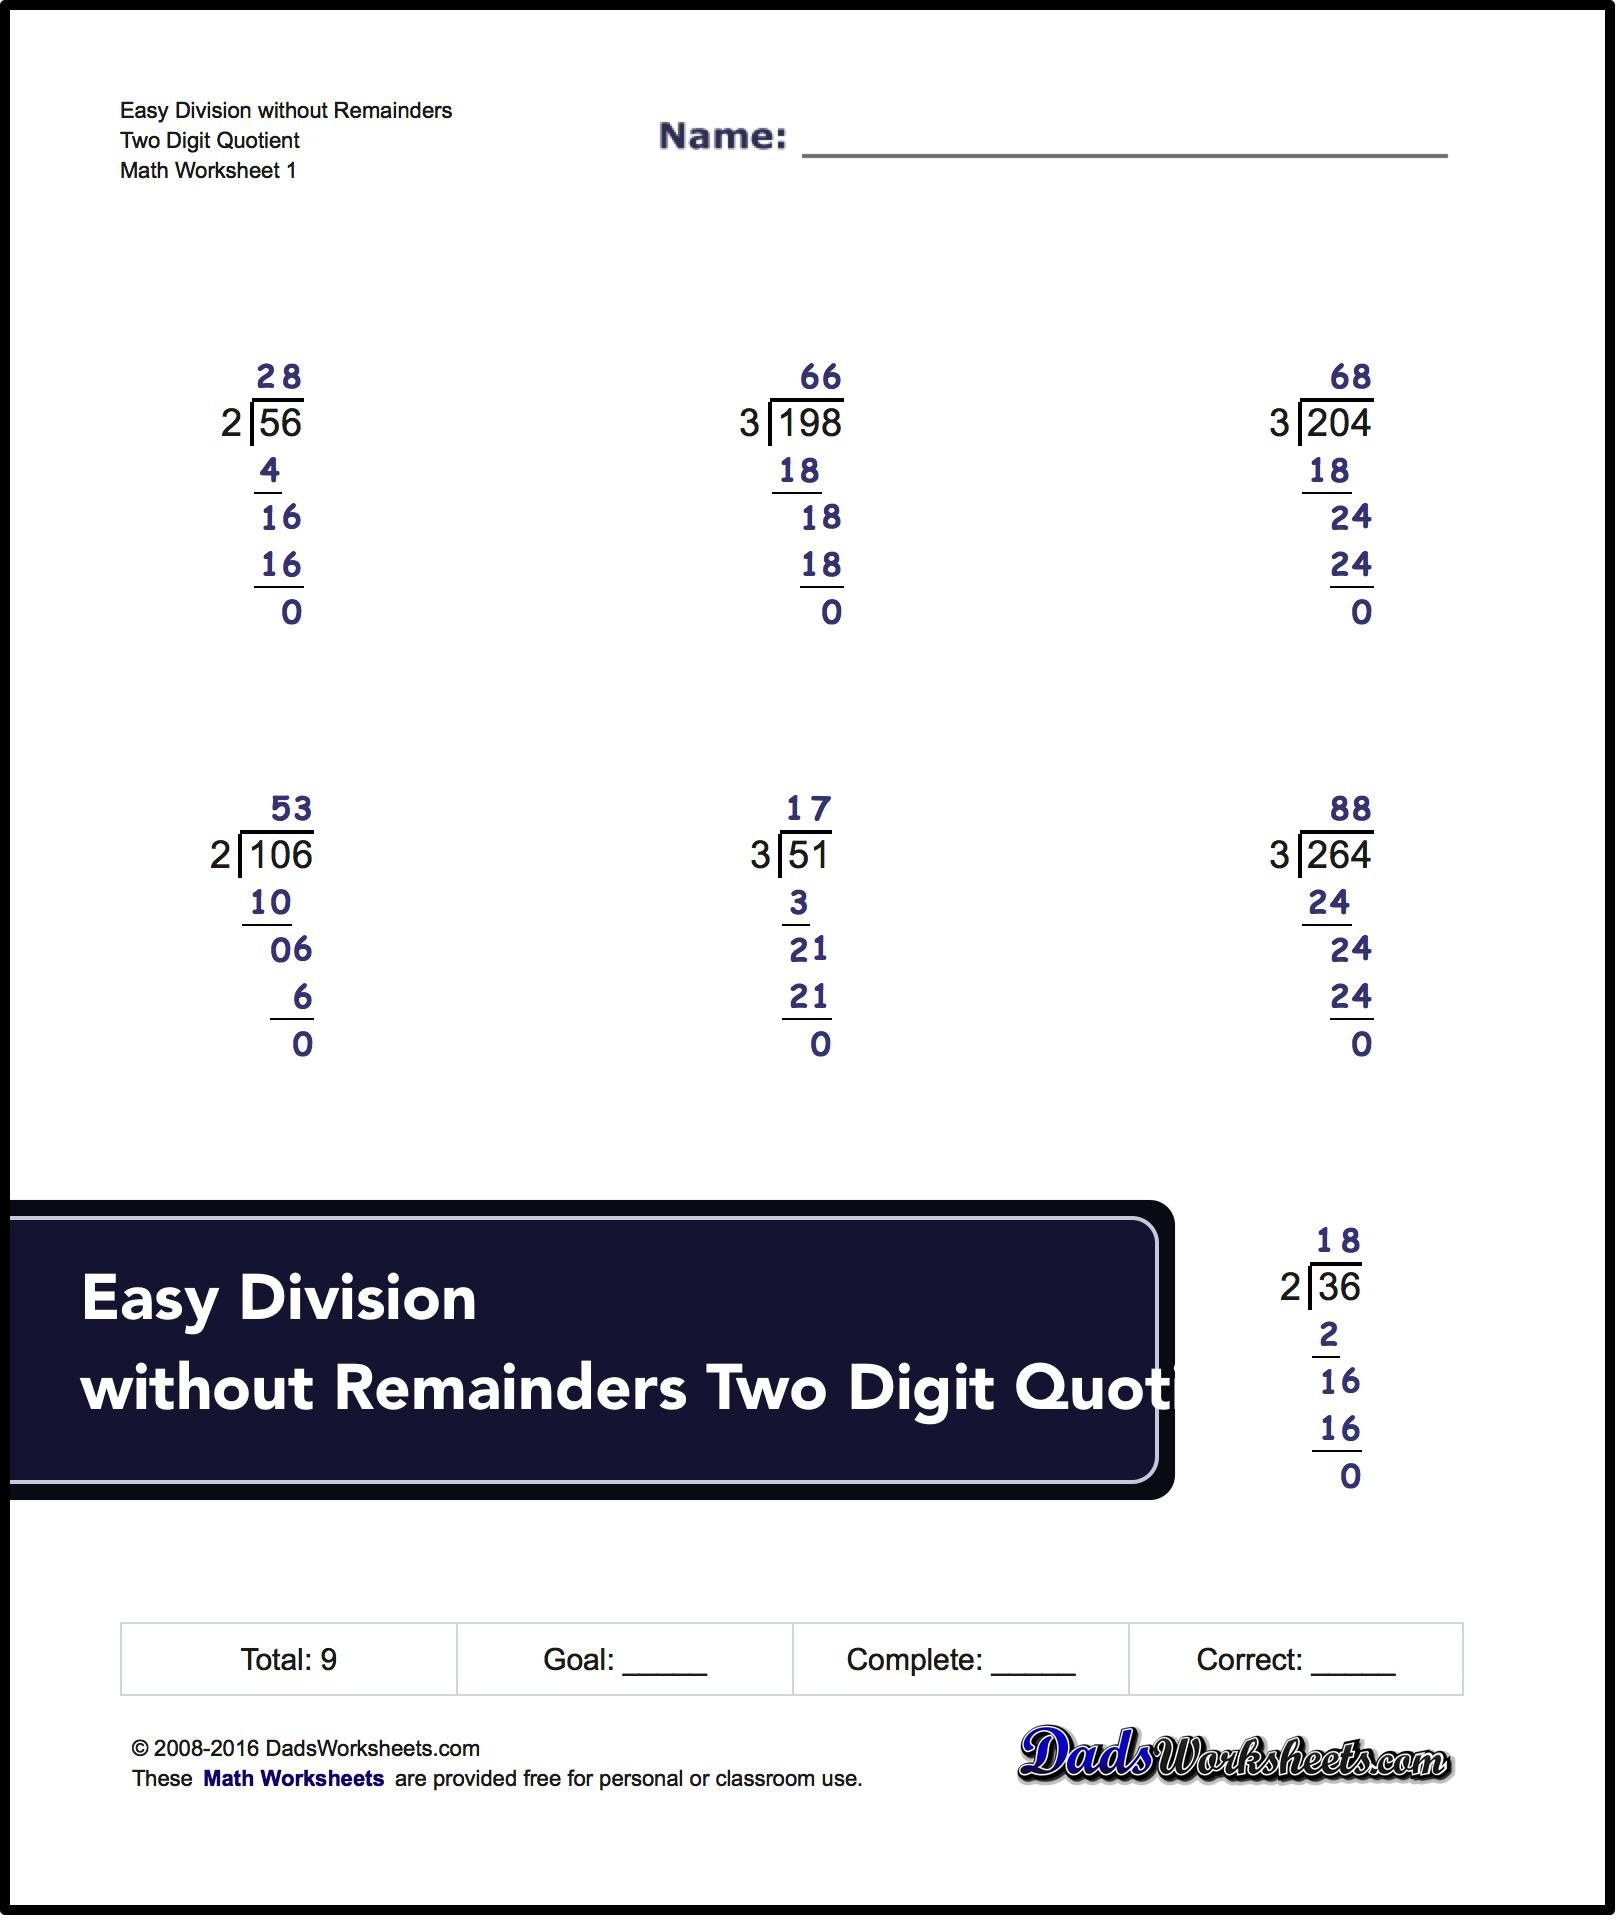 Links to free math worksheets for Long Division problems with and – Long Division No Remainders Worksheets